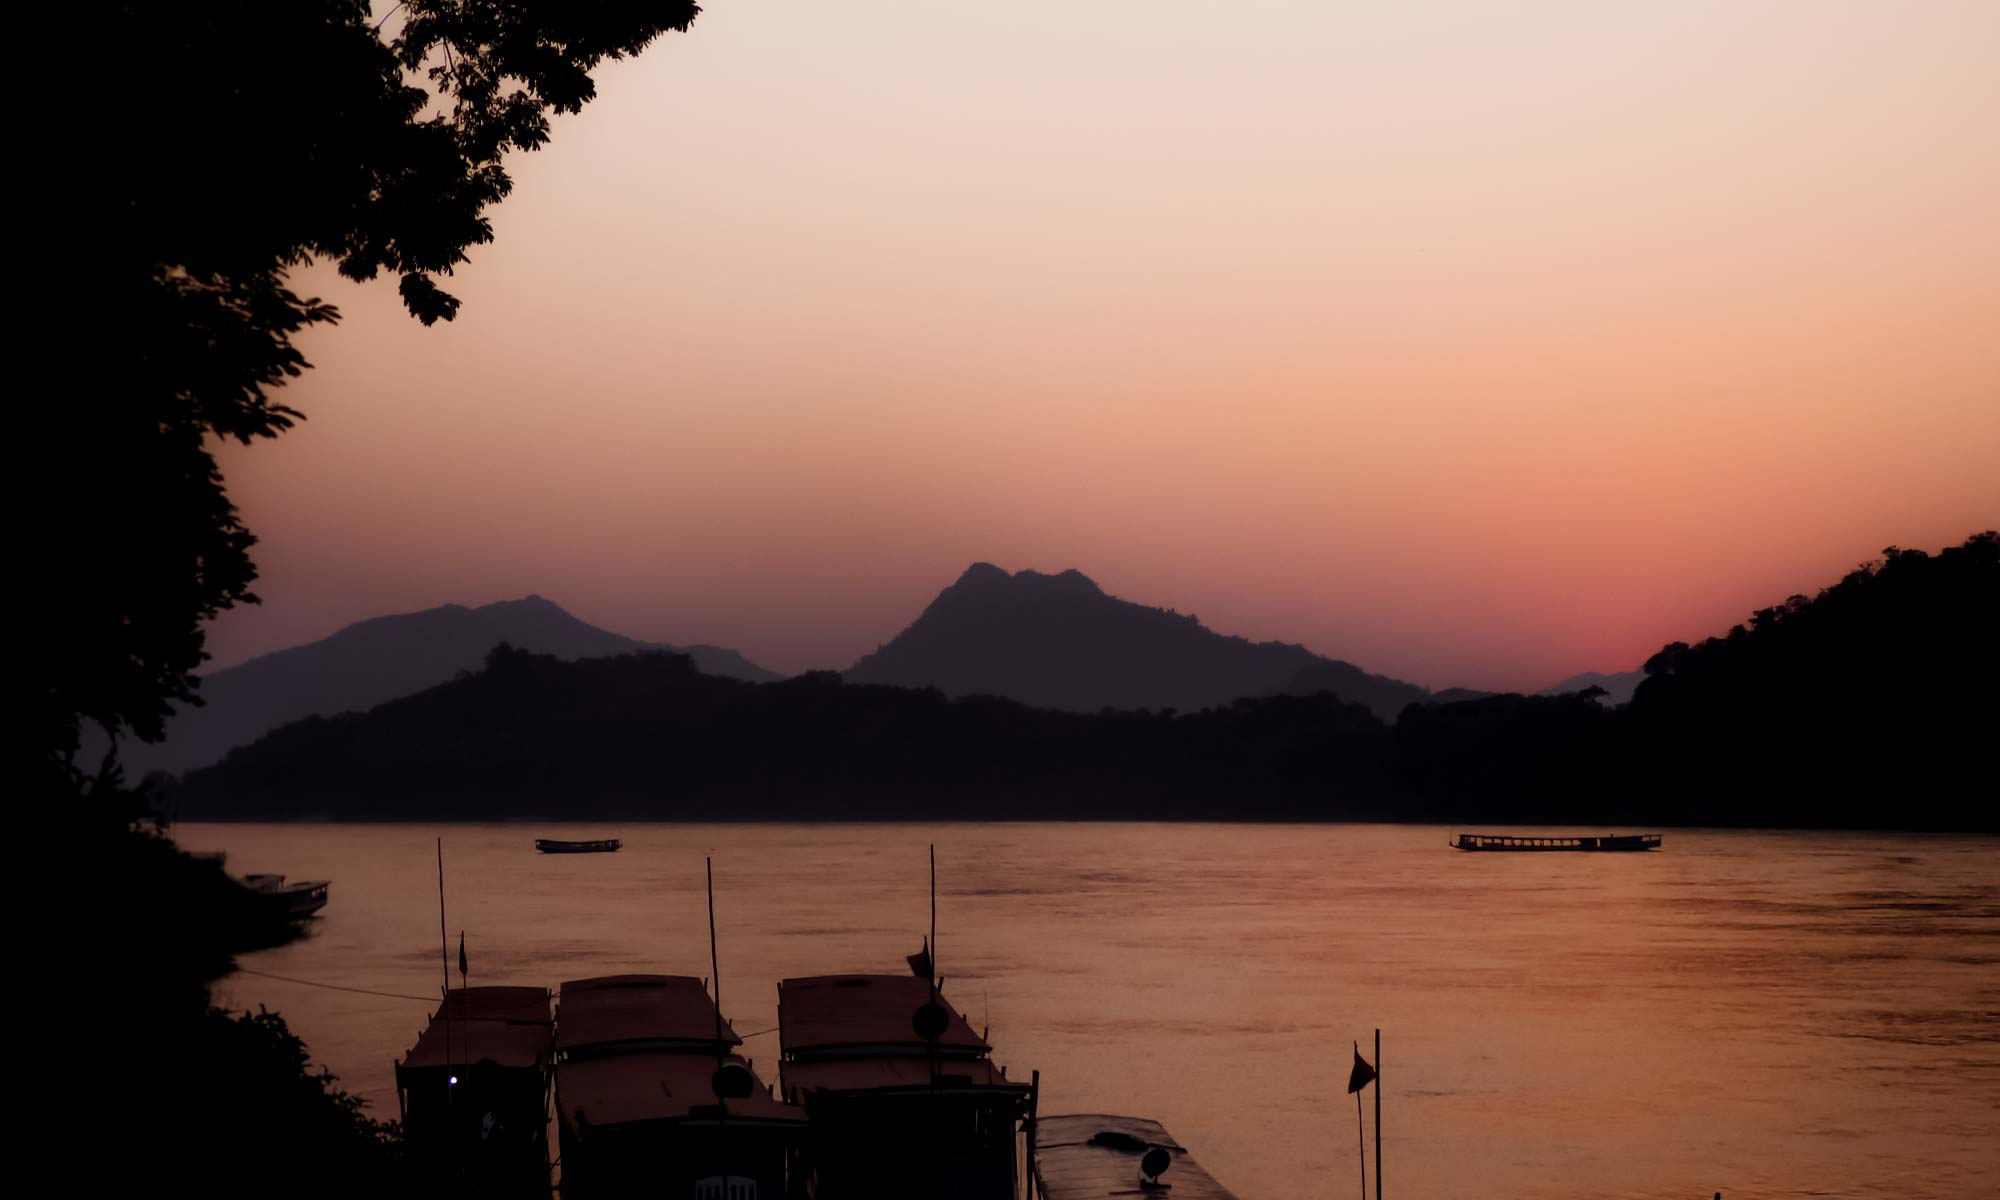 Magical sunset views in Luang Prabang, Laos' cultural city!